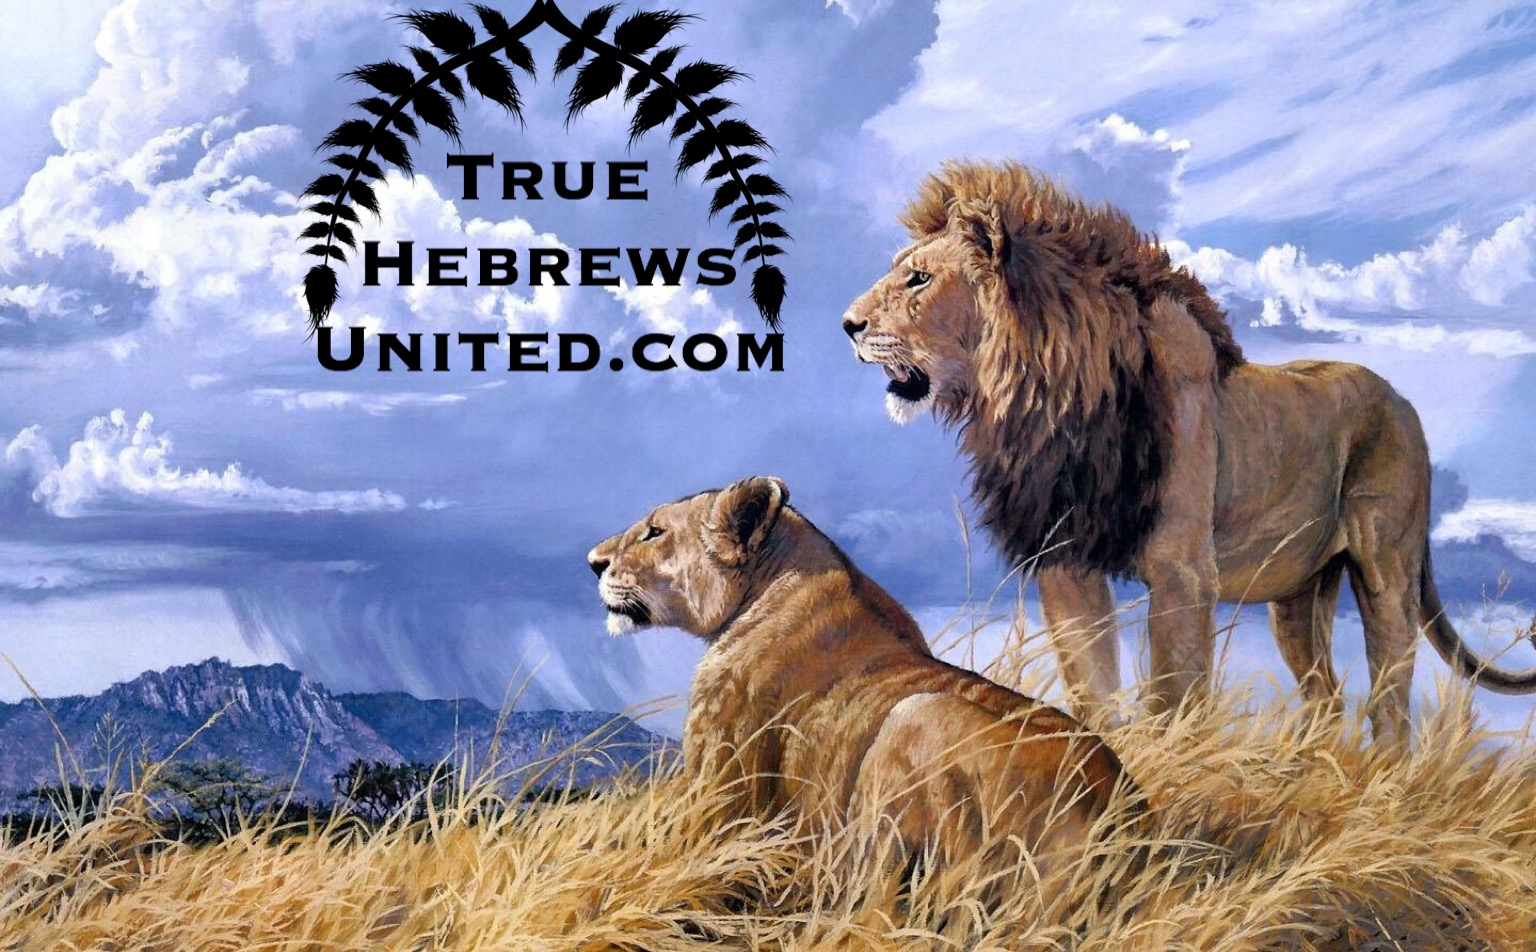 True Hebrews United logo